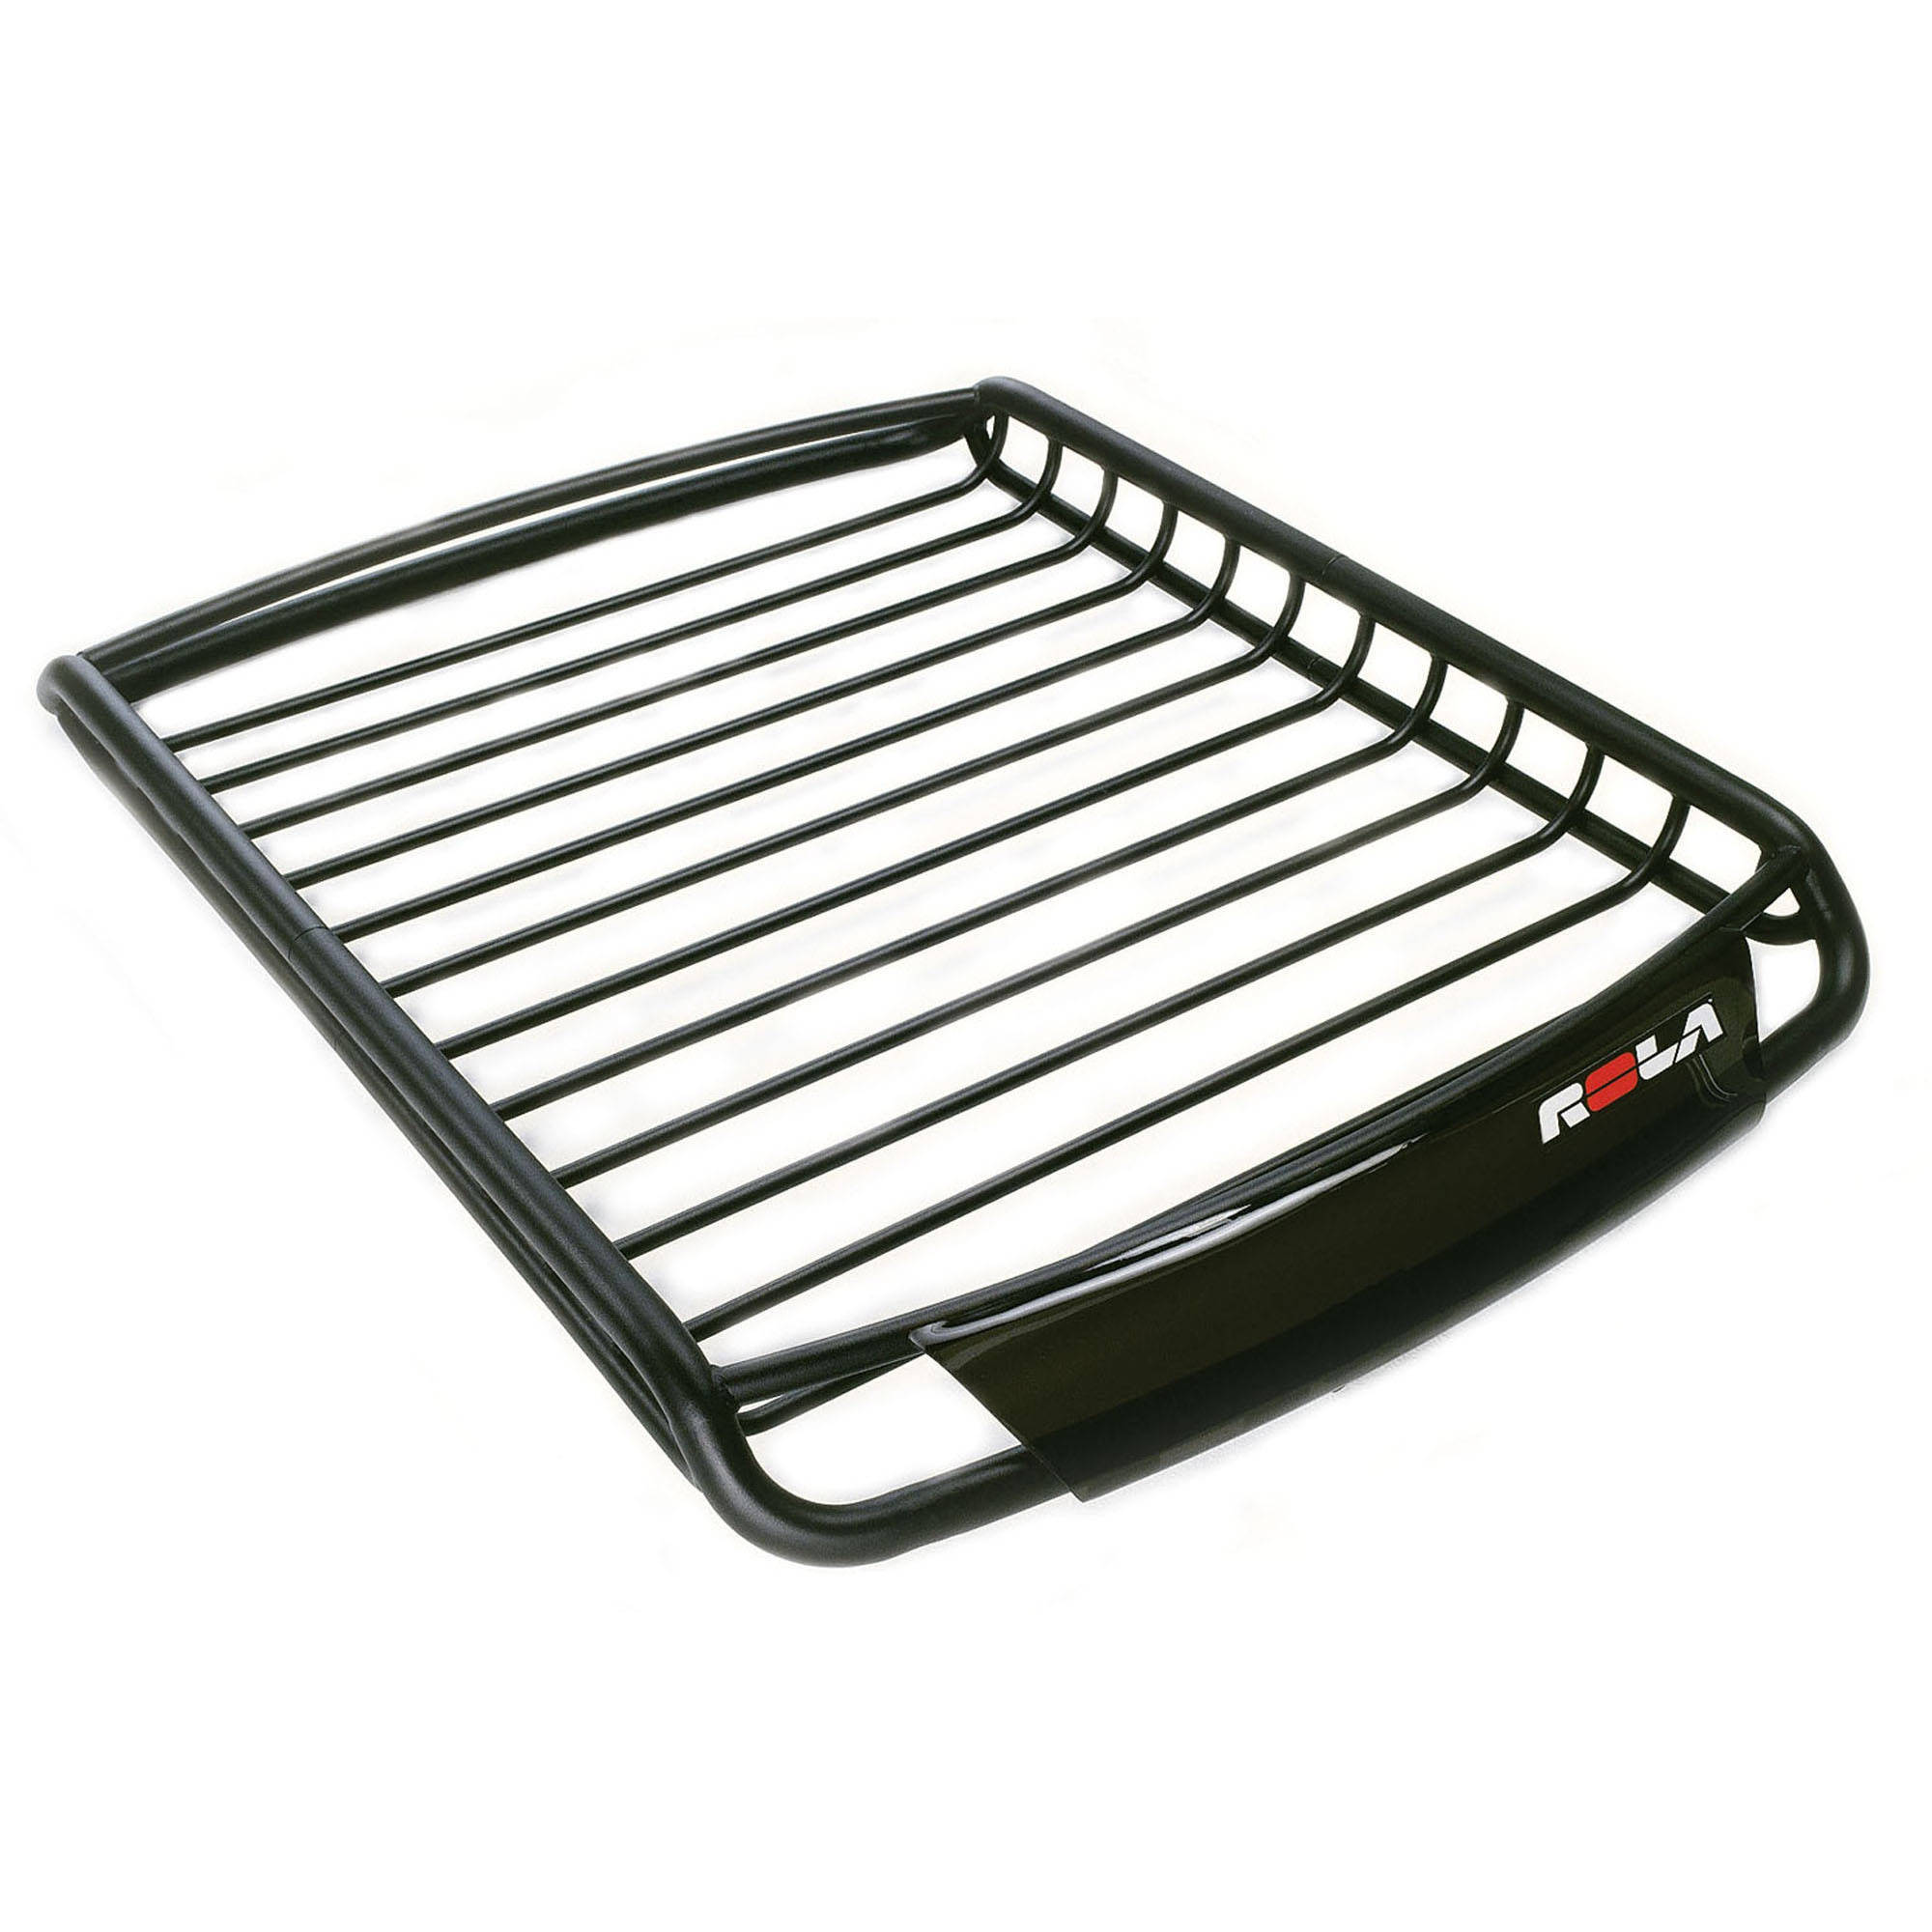 ROLA Vortex Roof Top Cargo Basket for Full Size Cars, SUVs and Vans, Black